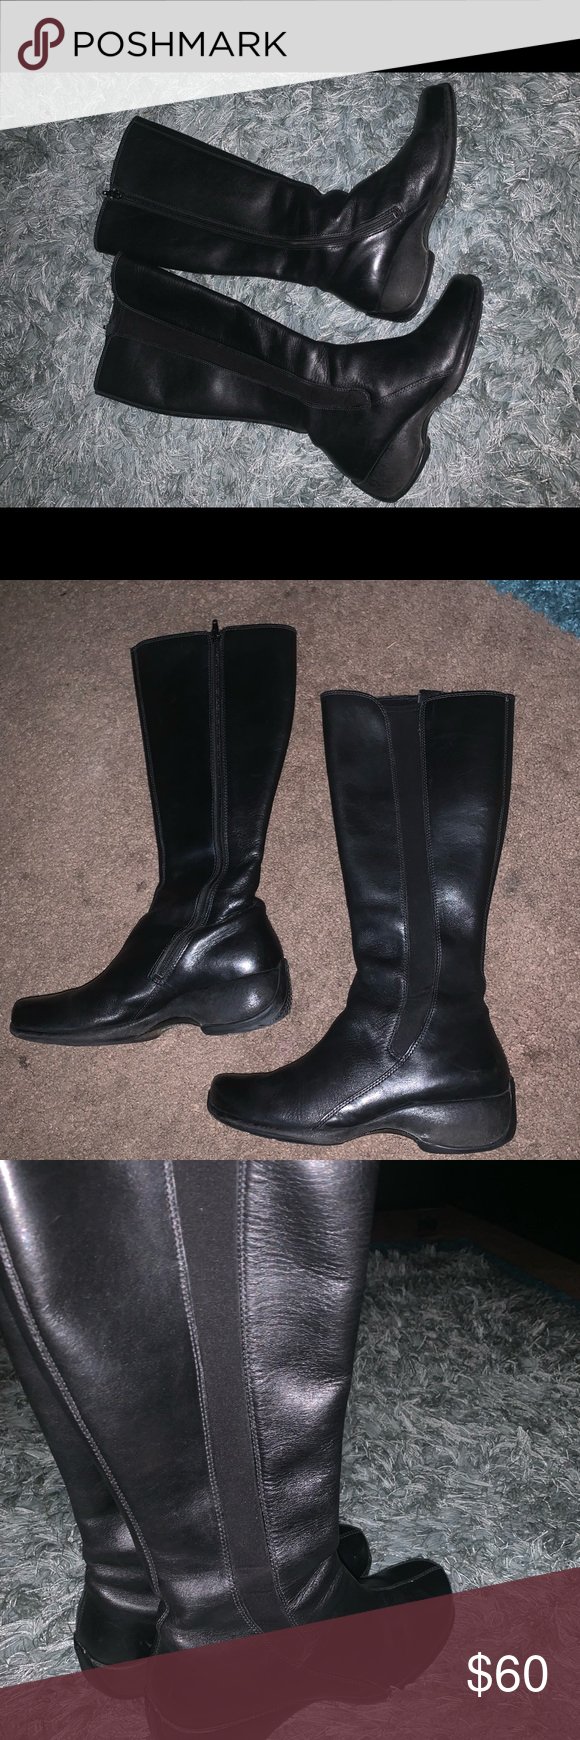 Merrill Leather Knee High Boots Knee High Leather Boots Boots High Boots